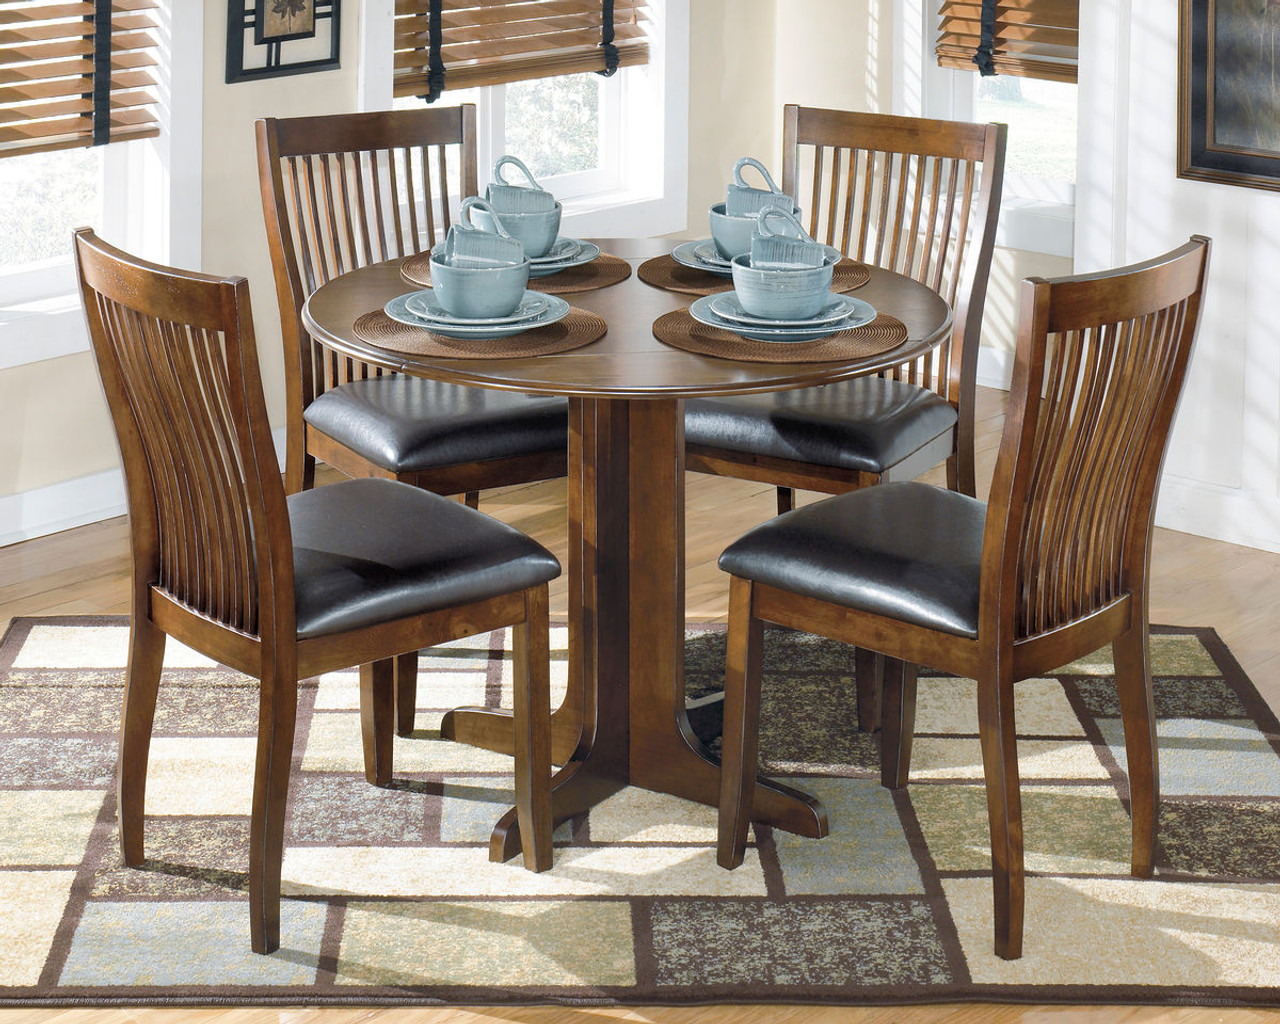 The Stuman Medium Brown 5 Pc Round Drop Leaf Dining Set Available At 5 Star Furniture Serving Houston Tx And Surrounding Areas